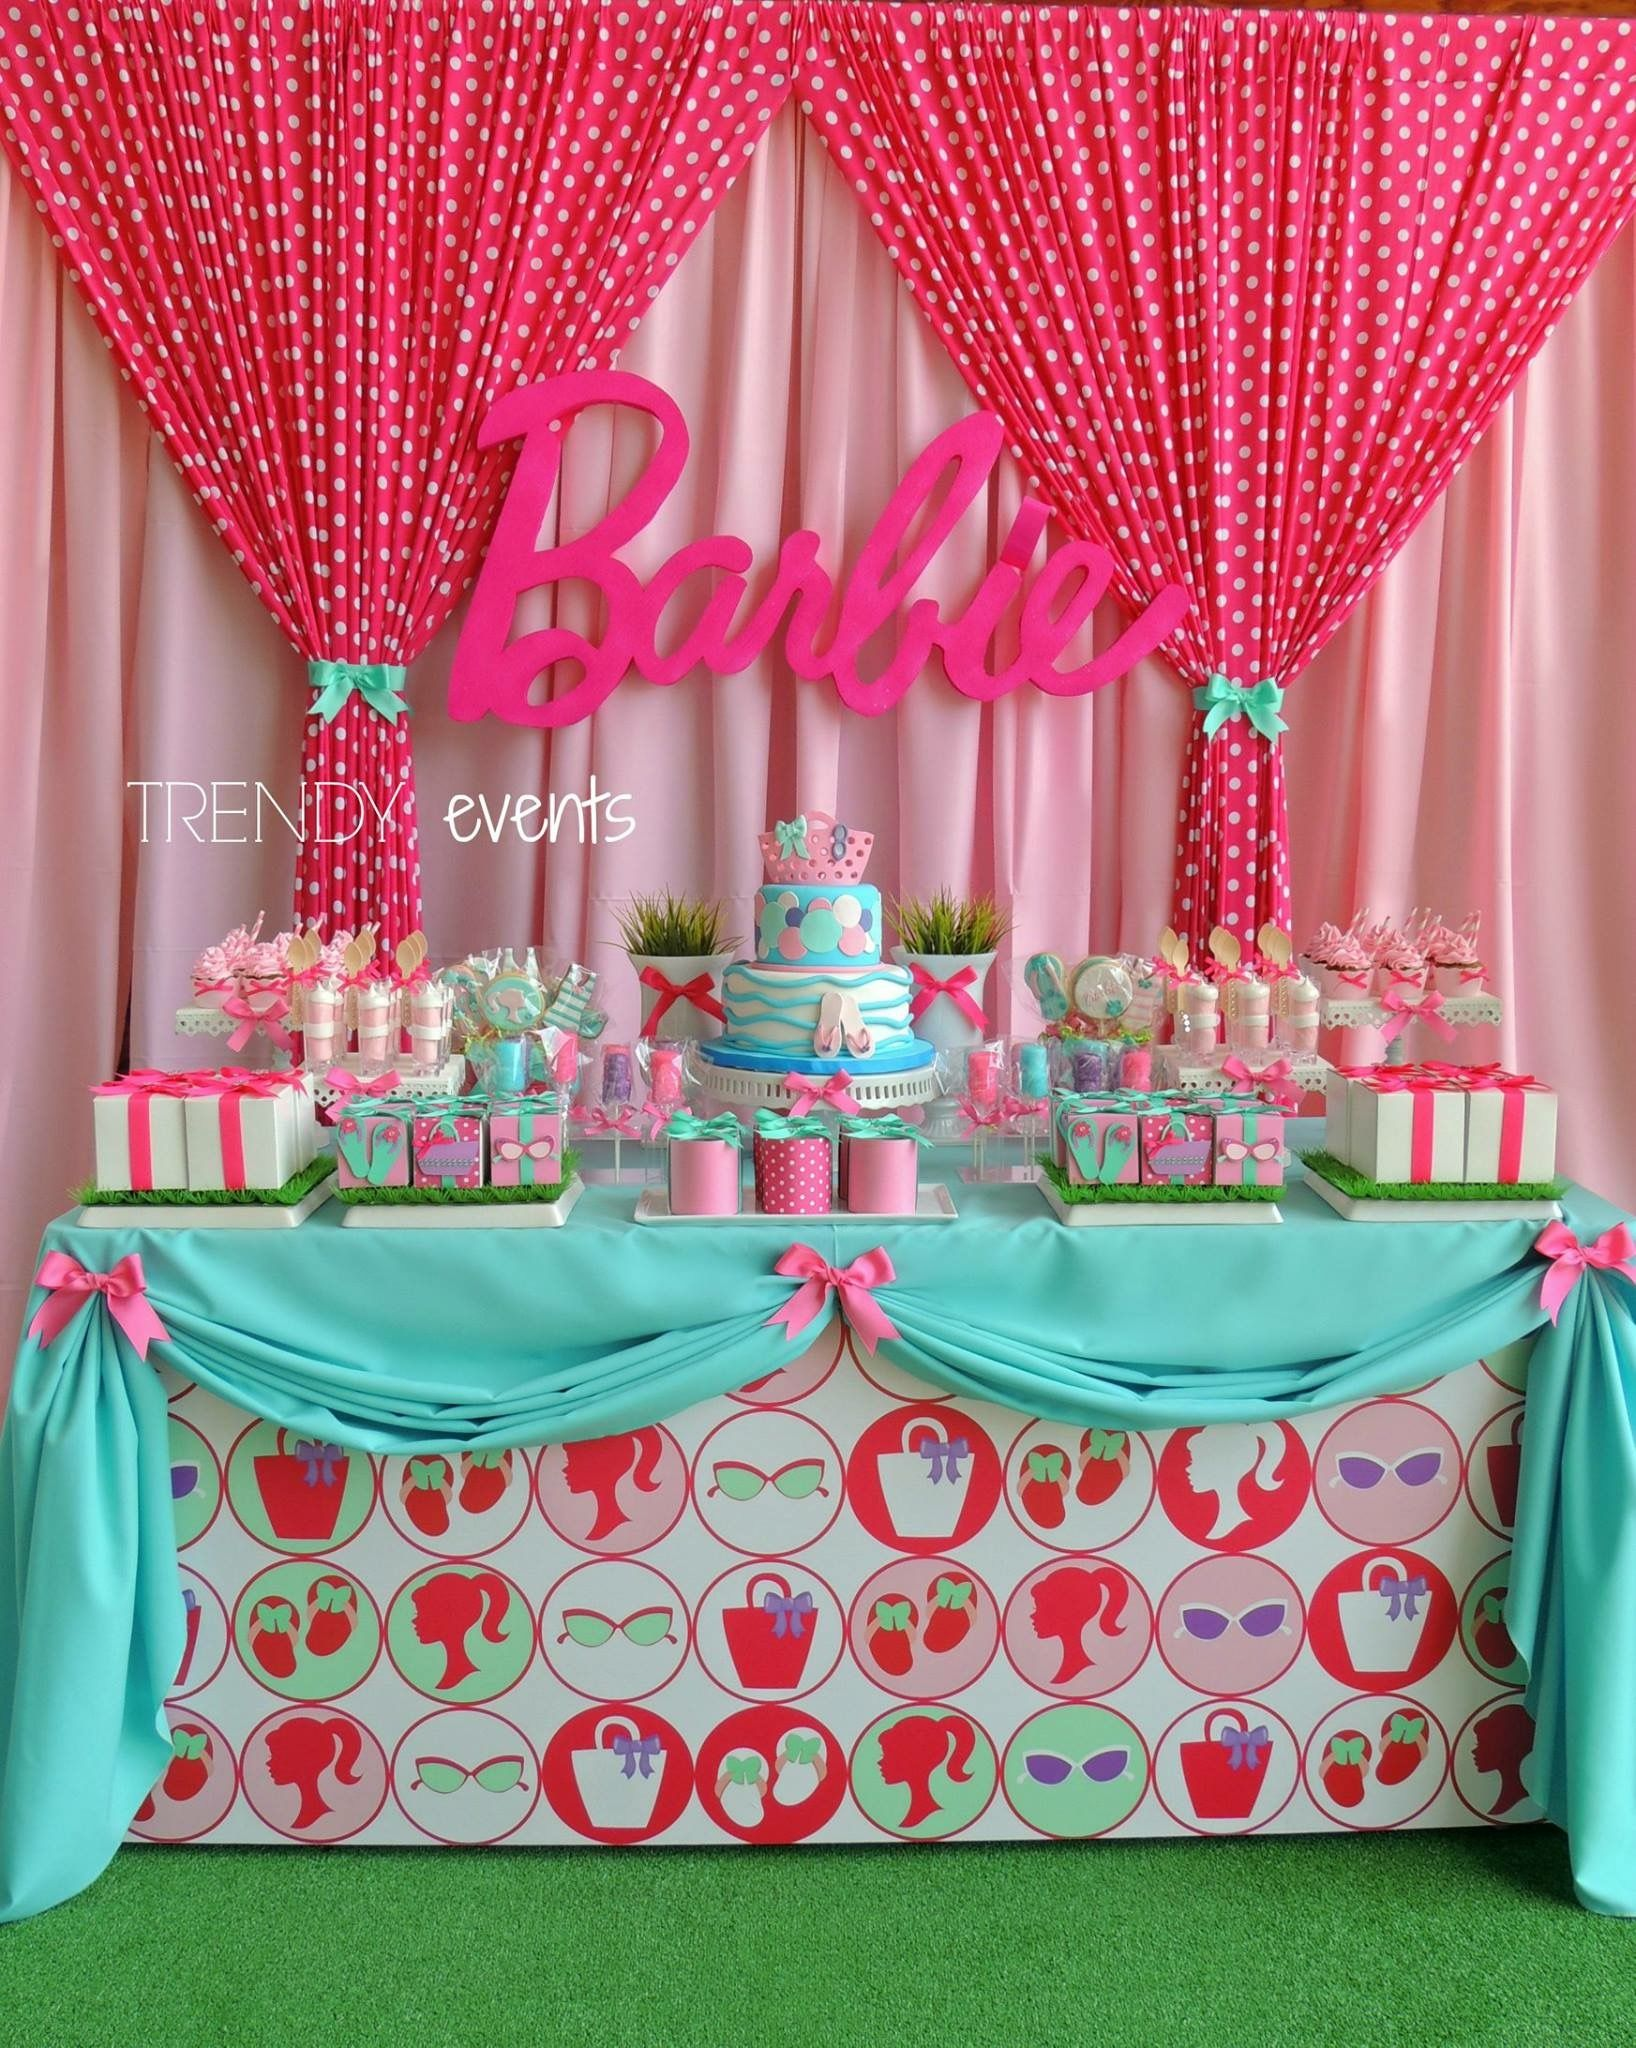 pin by ahmed s on holidays and events barbie birthday party rh pinterest com barbie birthday party ideas for 7 year olds barbie birthday party ideas themes